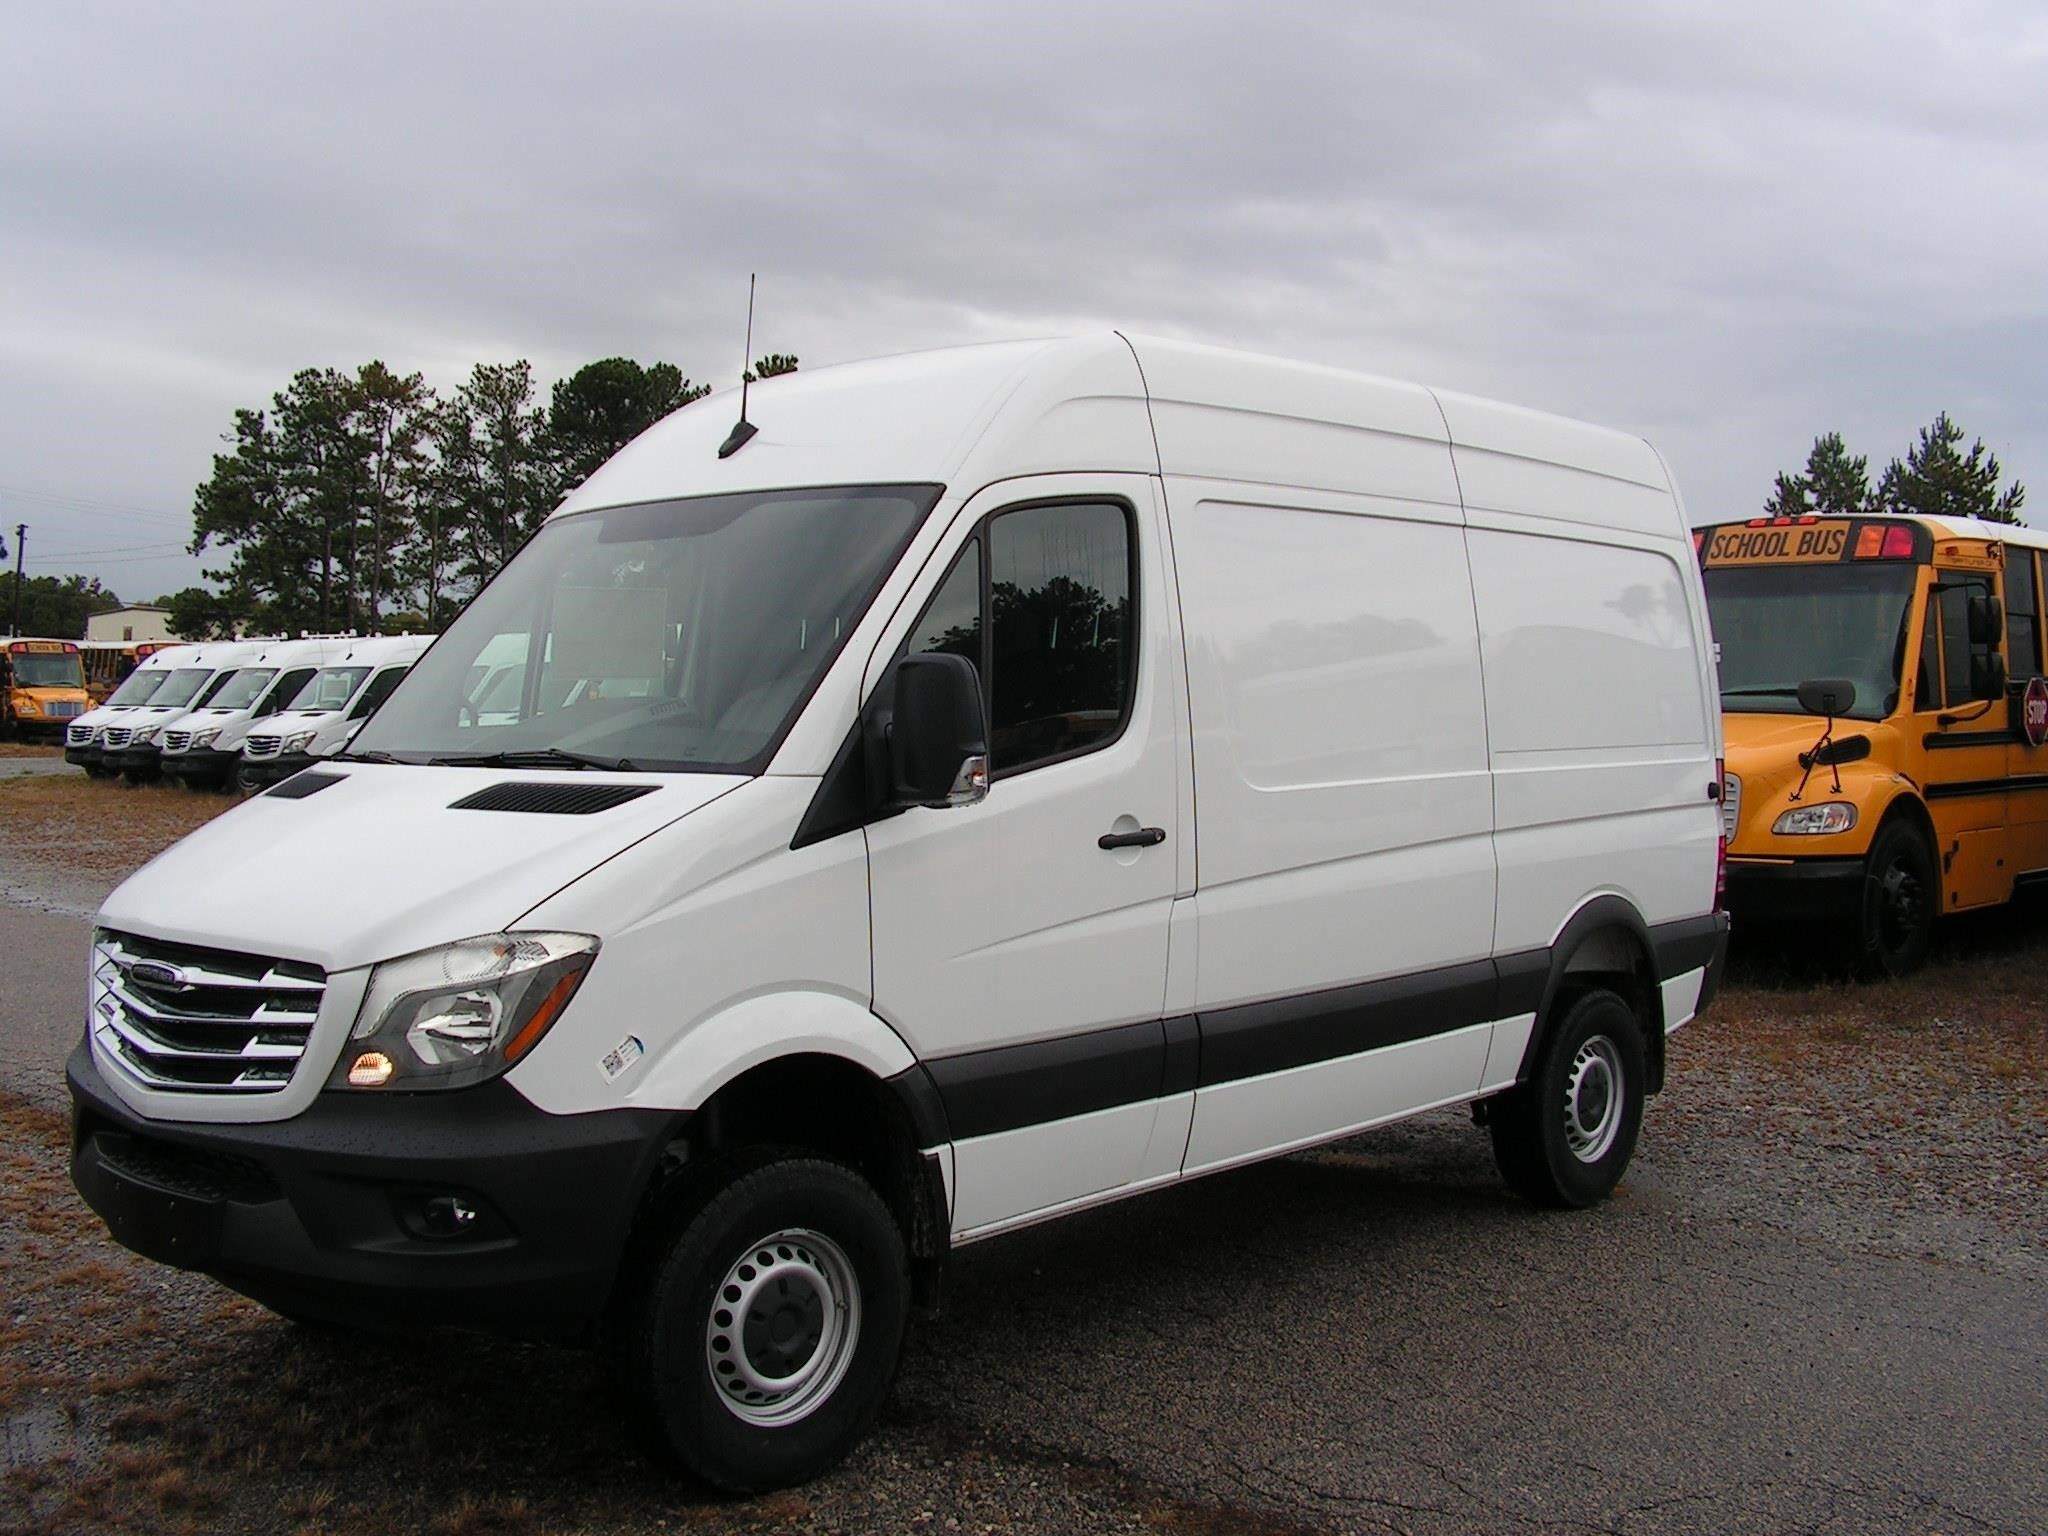 Check Out This 2018 Freightliner Sprinter 2500 Listing In Forest Park Ga 30297 On Commercialtrucktrader Com It Is A Ca Freightliner Trucks For Sale Cargo Van